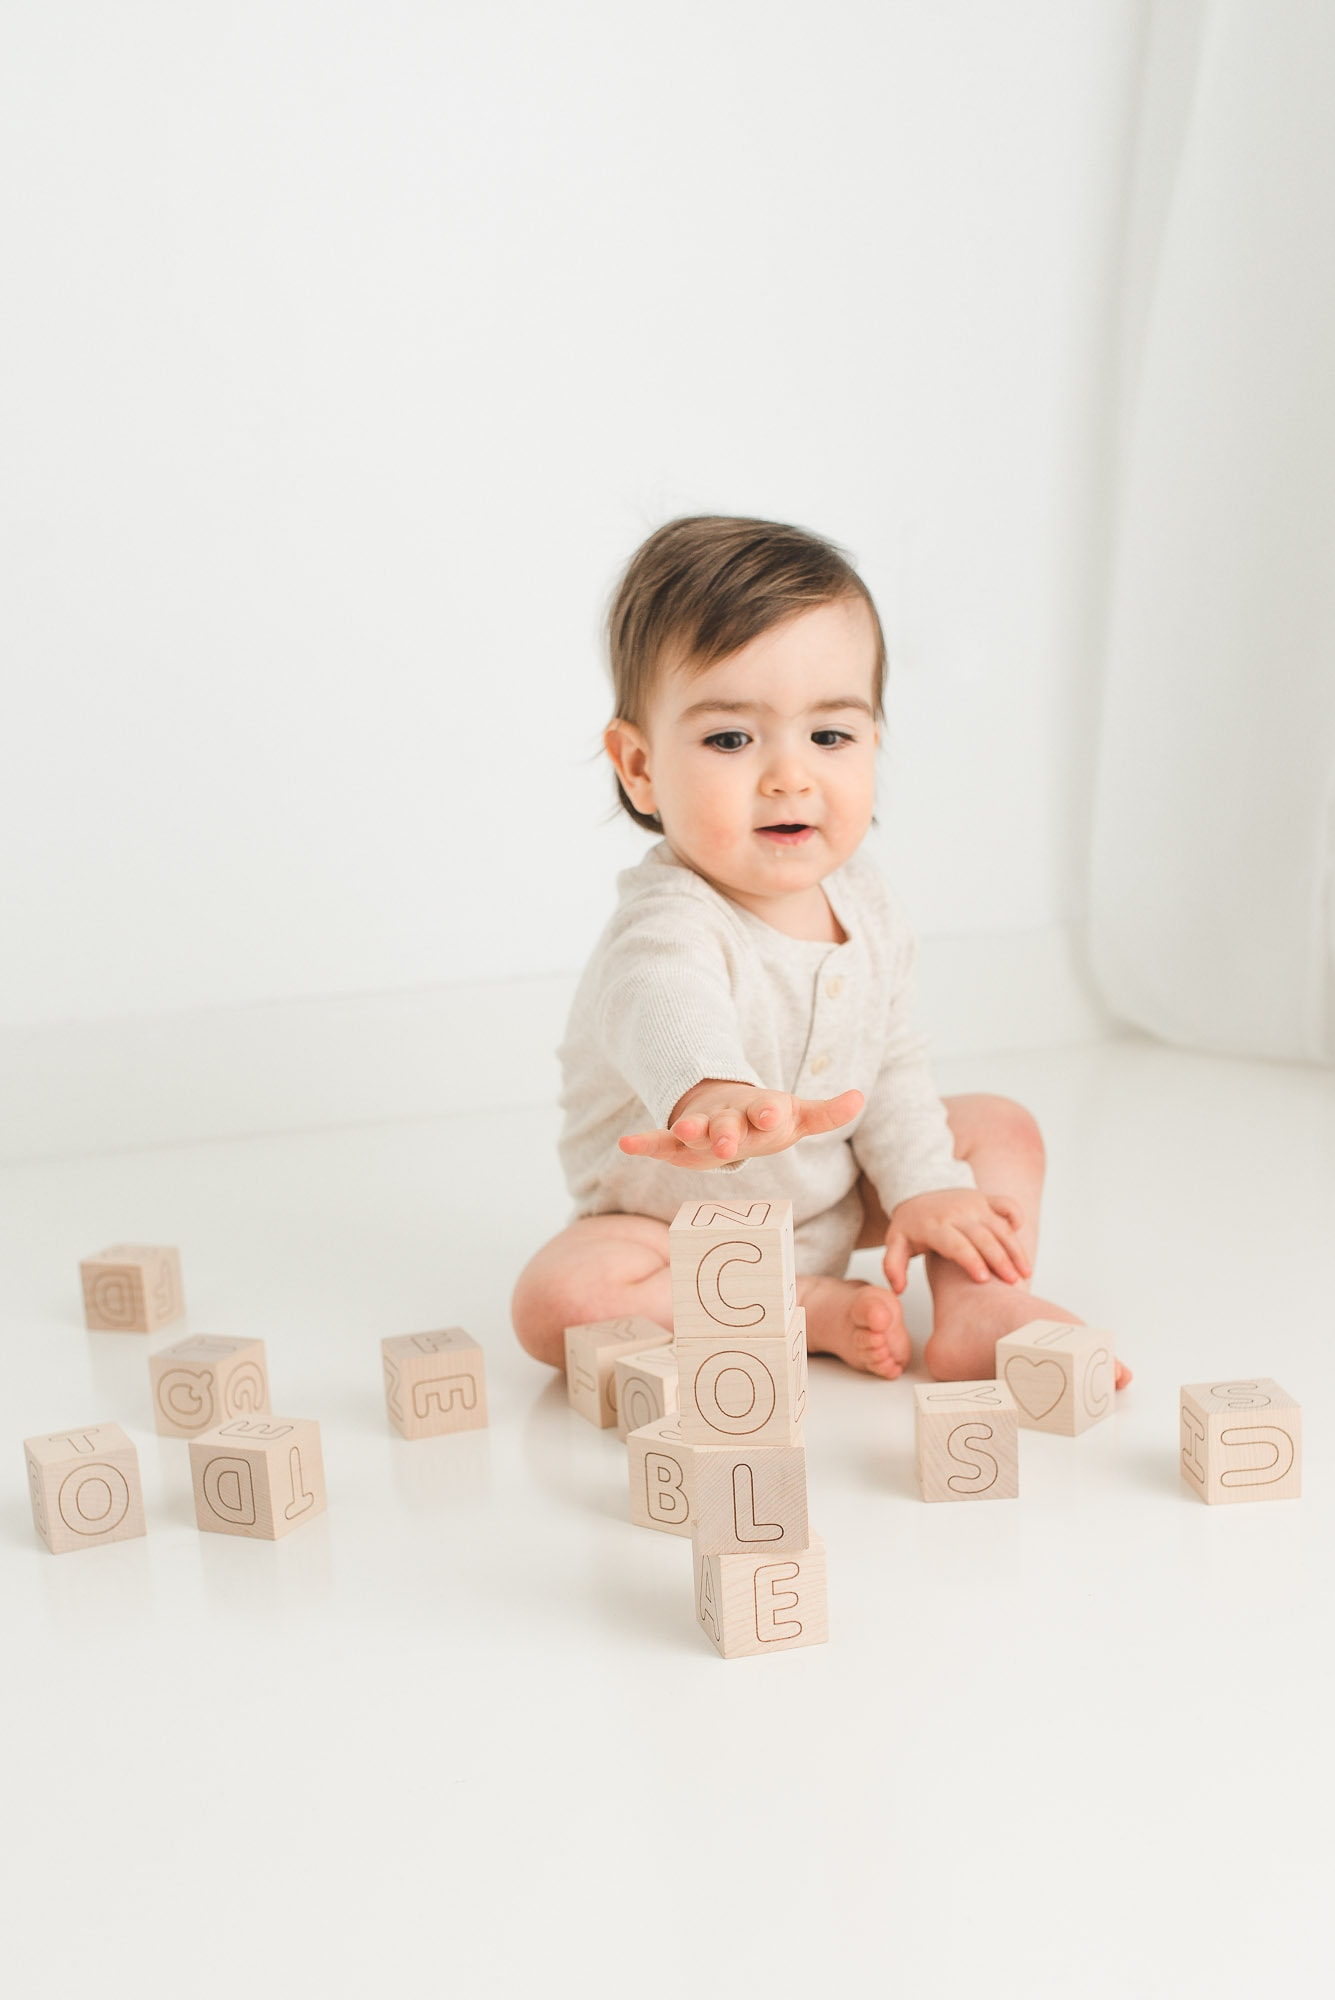 big baby photo session with alphabet blocks